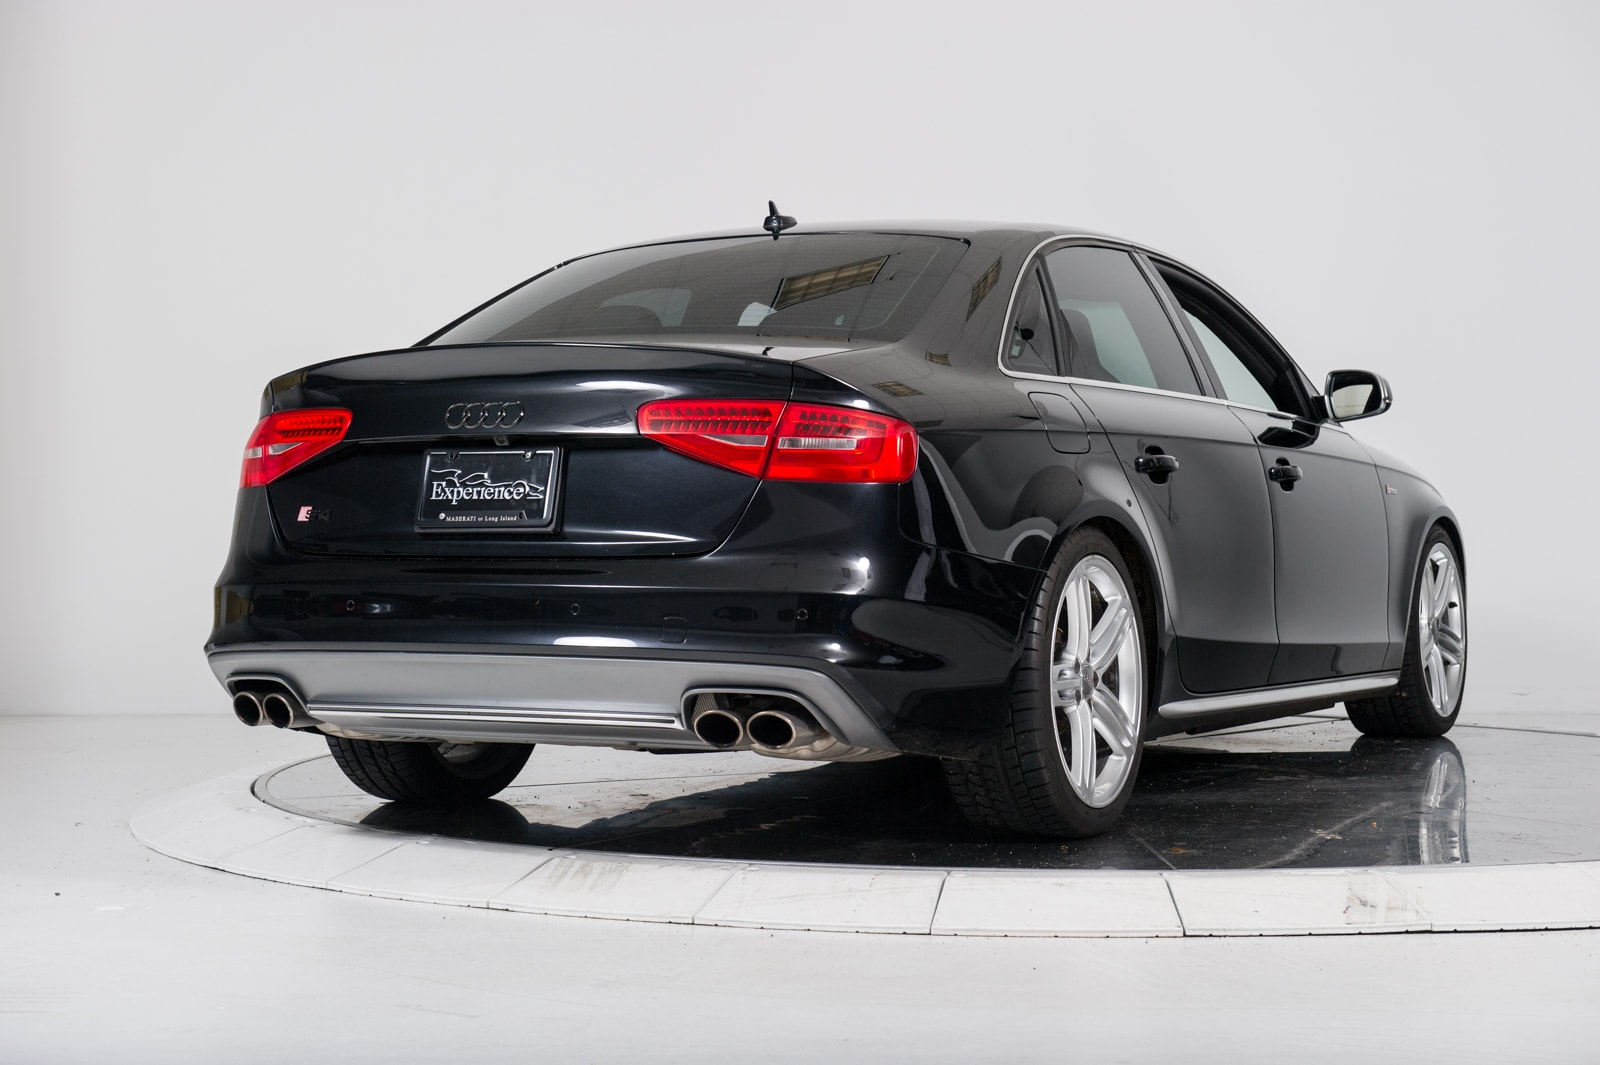 used 2014 audi s4 quattro in black for sale in nyc vin